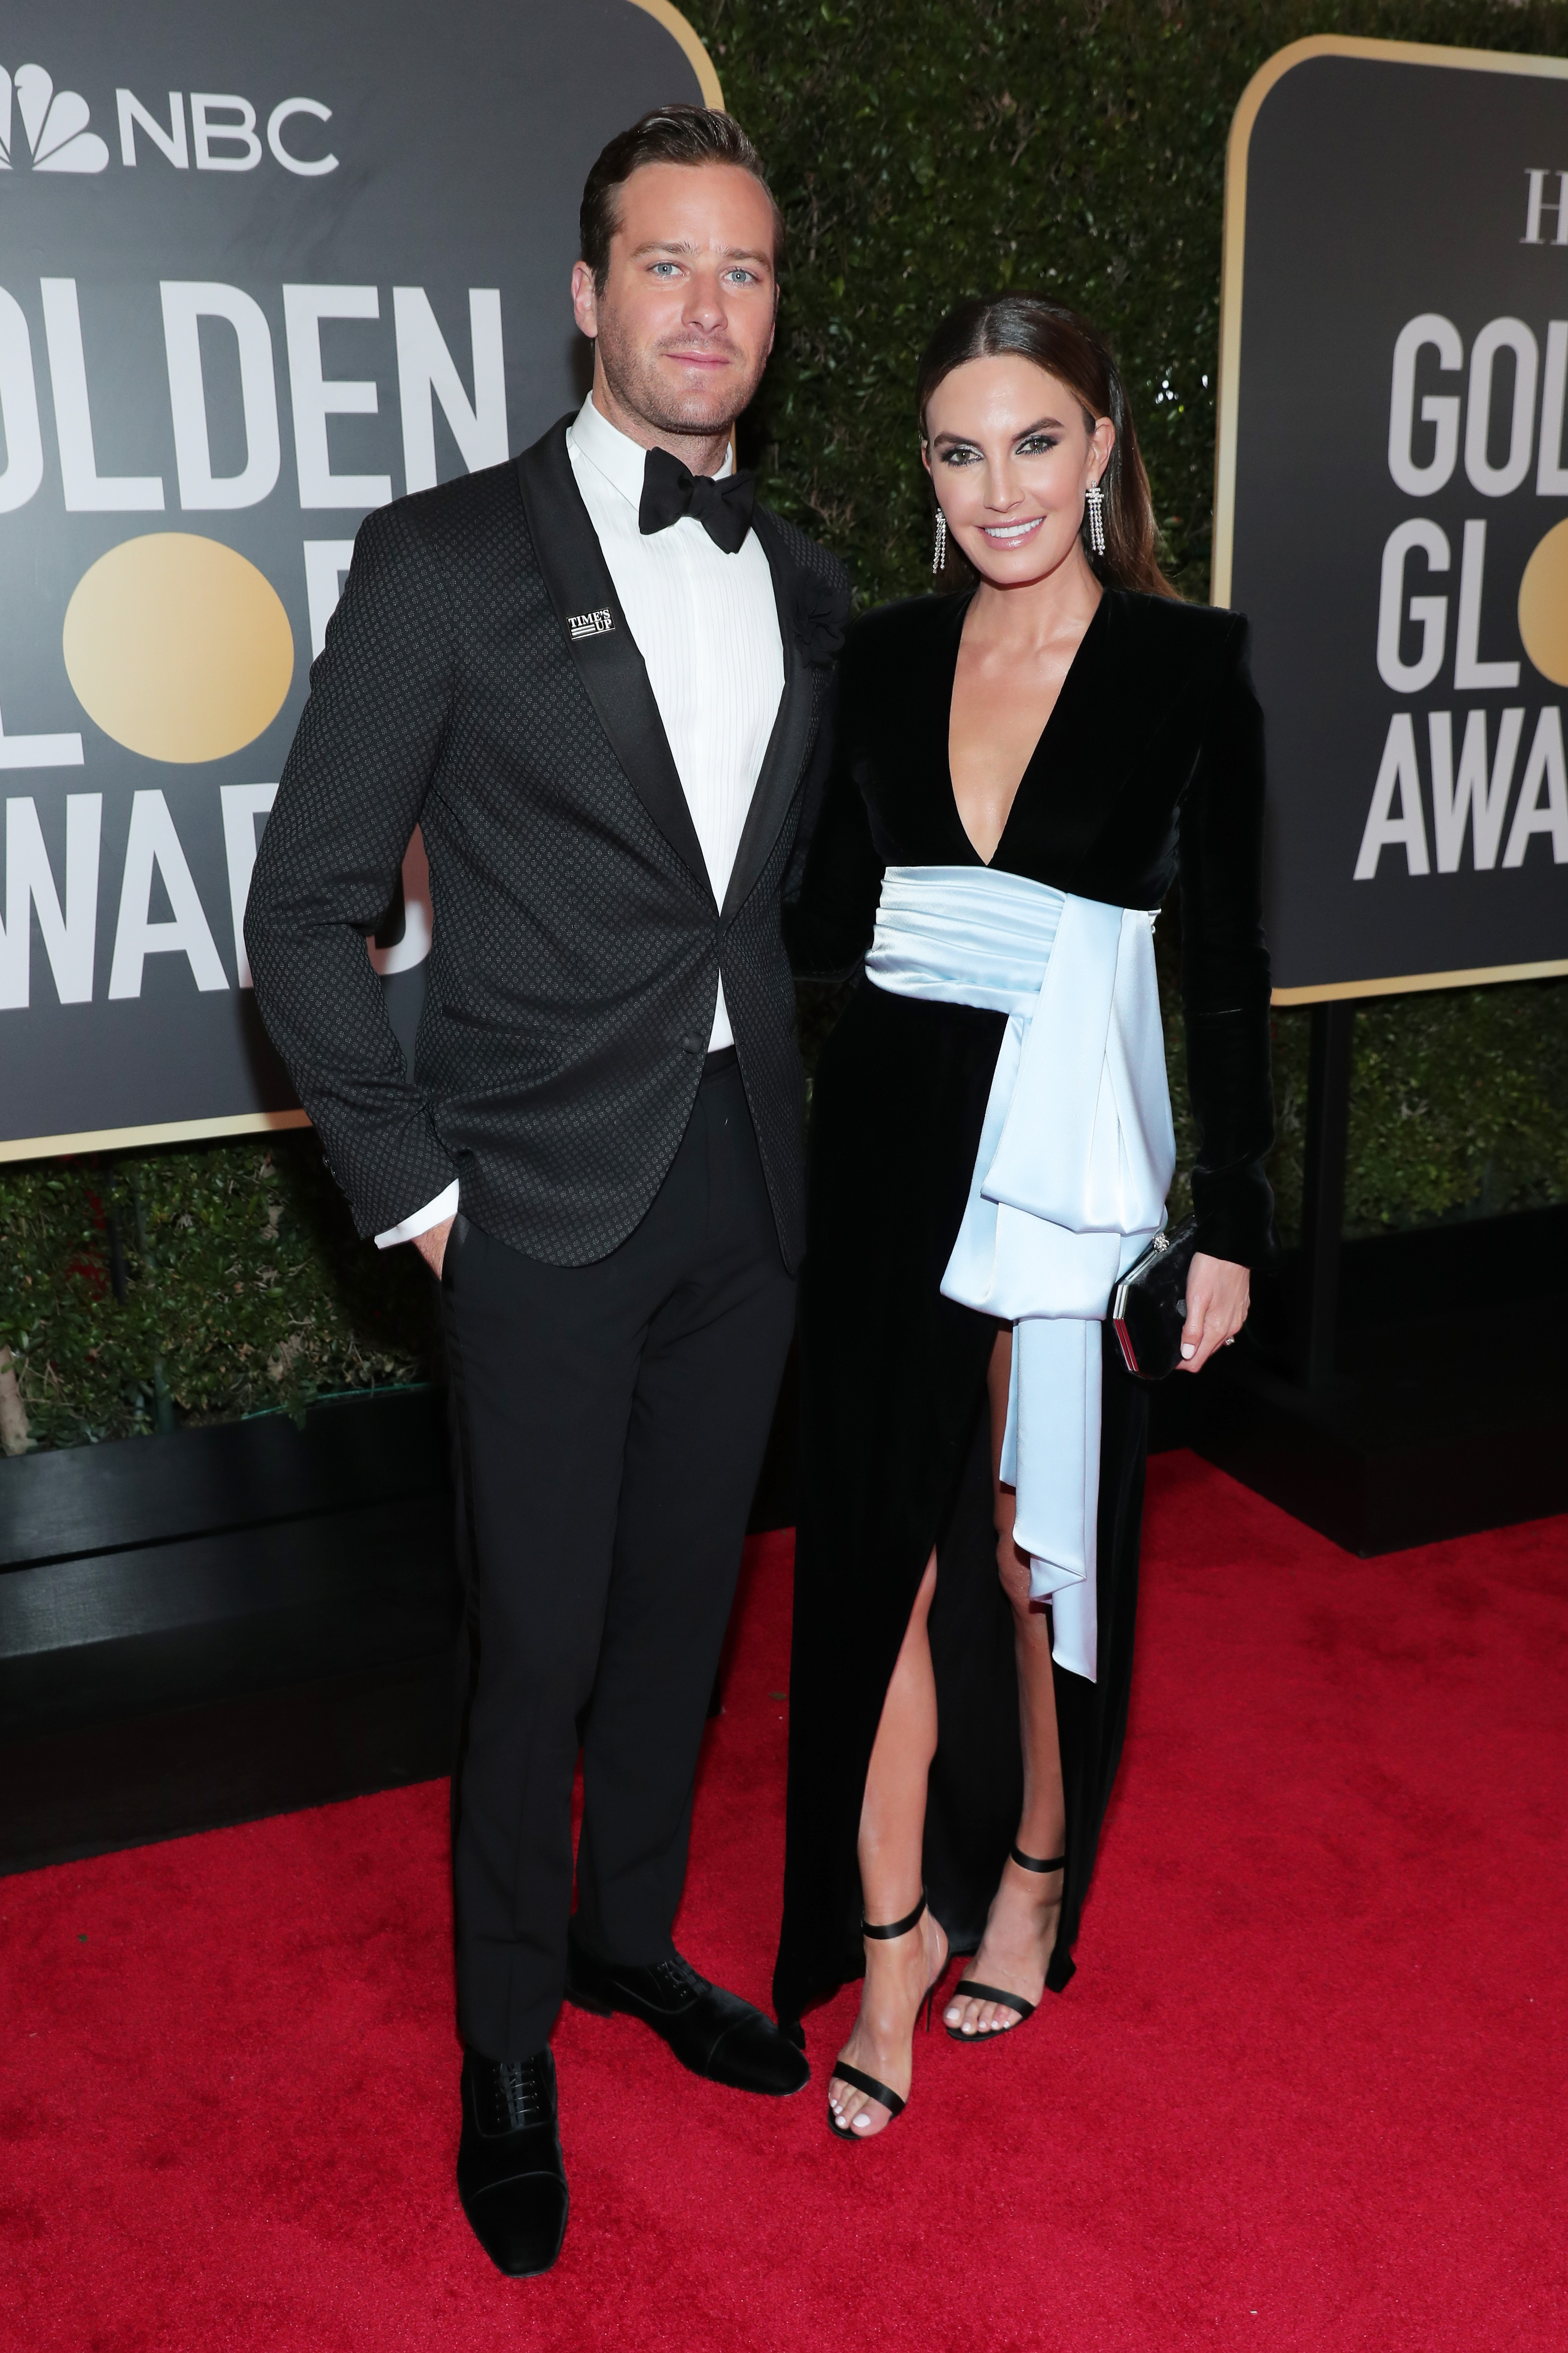 Armie Hammer and Elizabeth Chambers 2018 Golden Globes